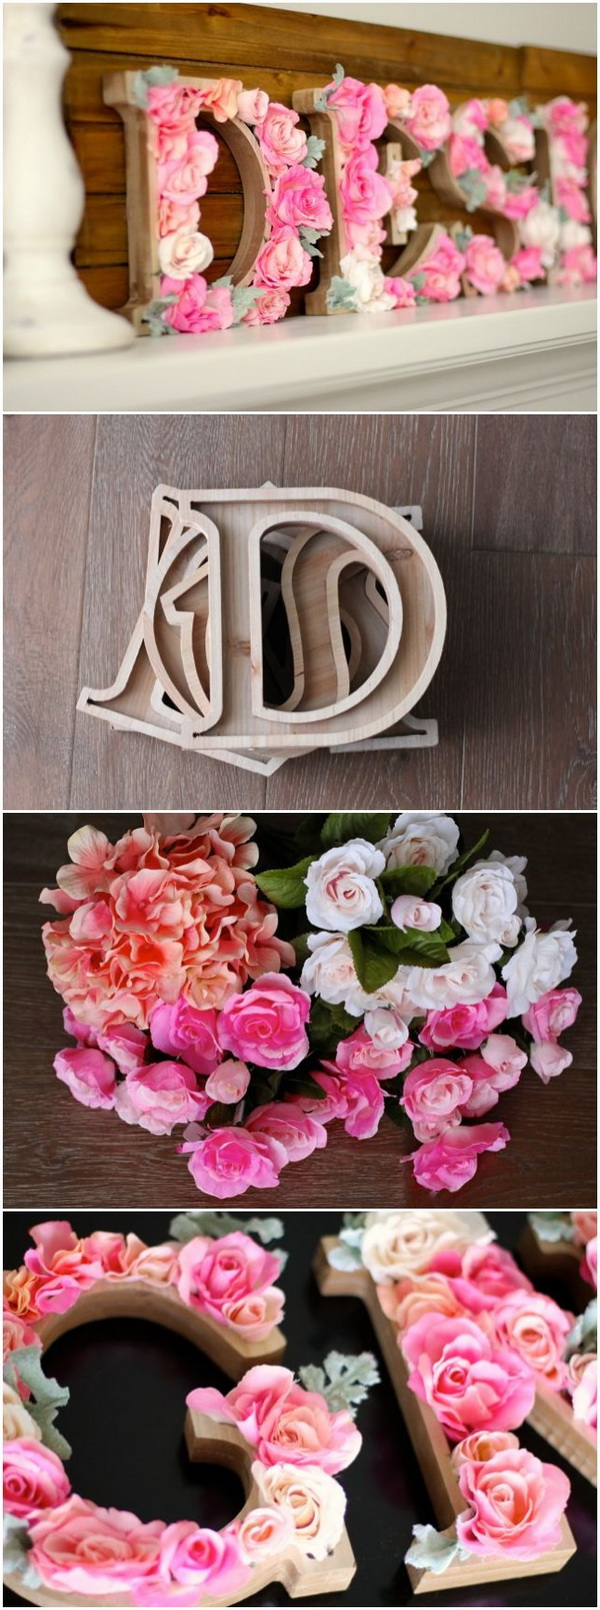 Diy room decor tutorials for teens - Diy Rustic Letters With Flowers A Wood Sign With Flowers That Says Design It